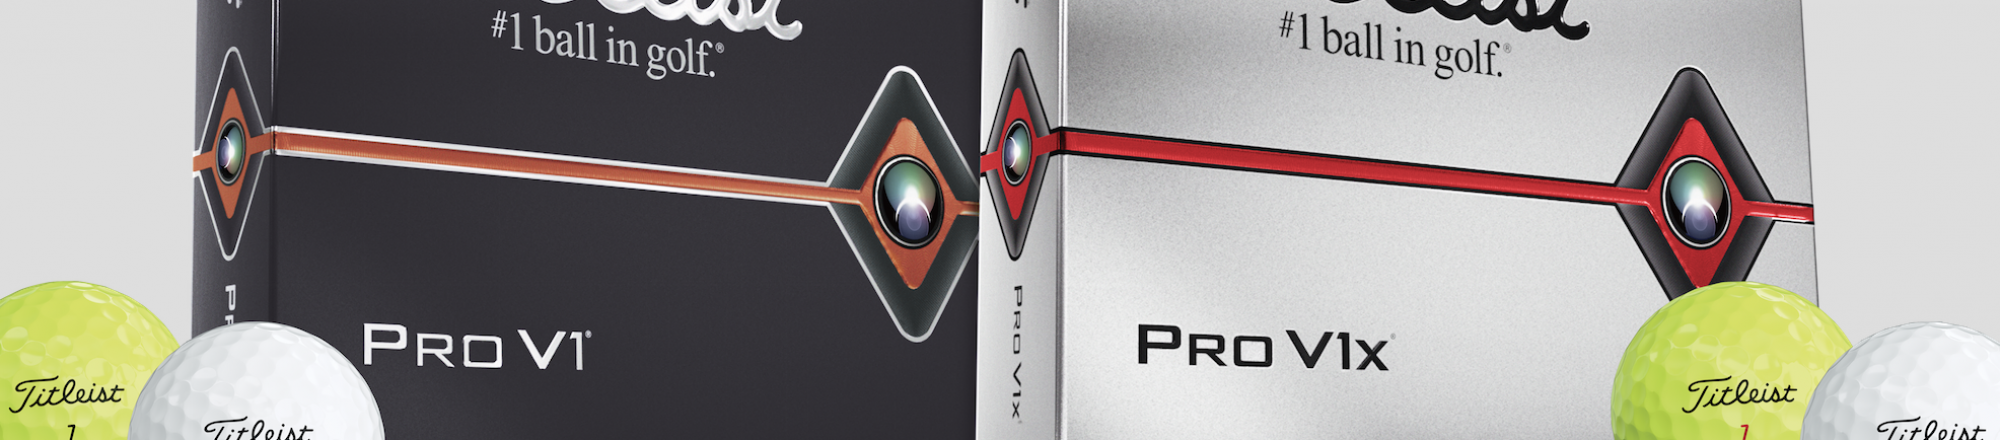 What to expect from the Titleist 2019 Pro V1 and Pro V1x